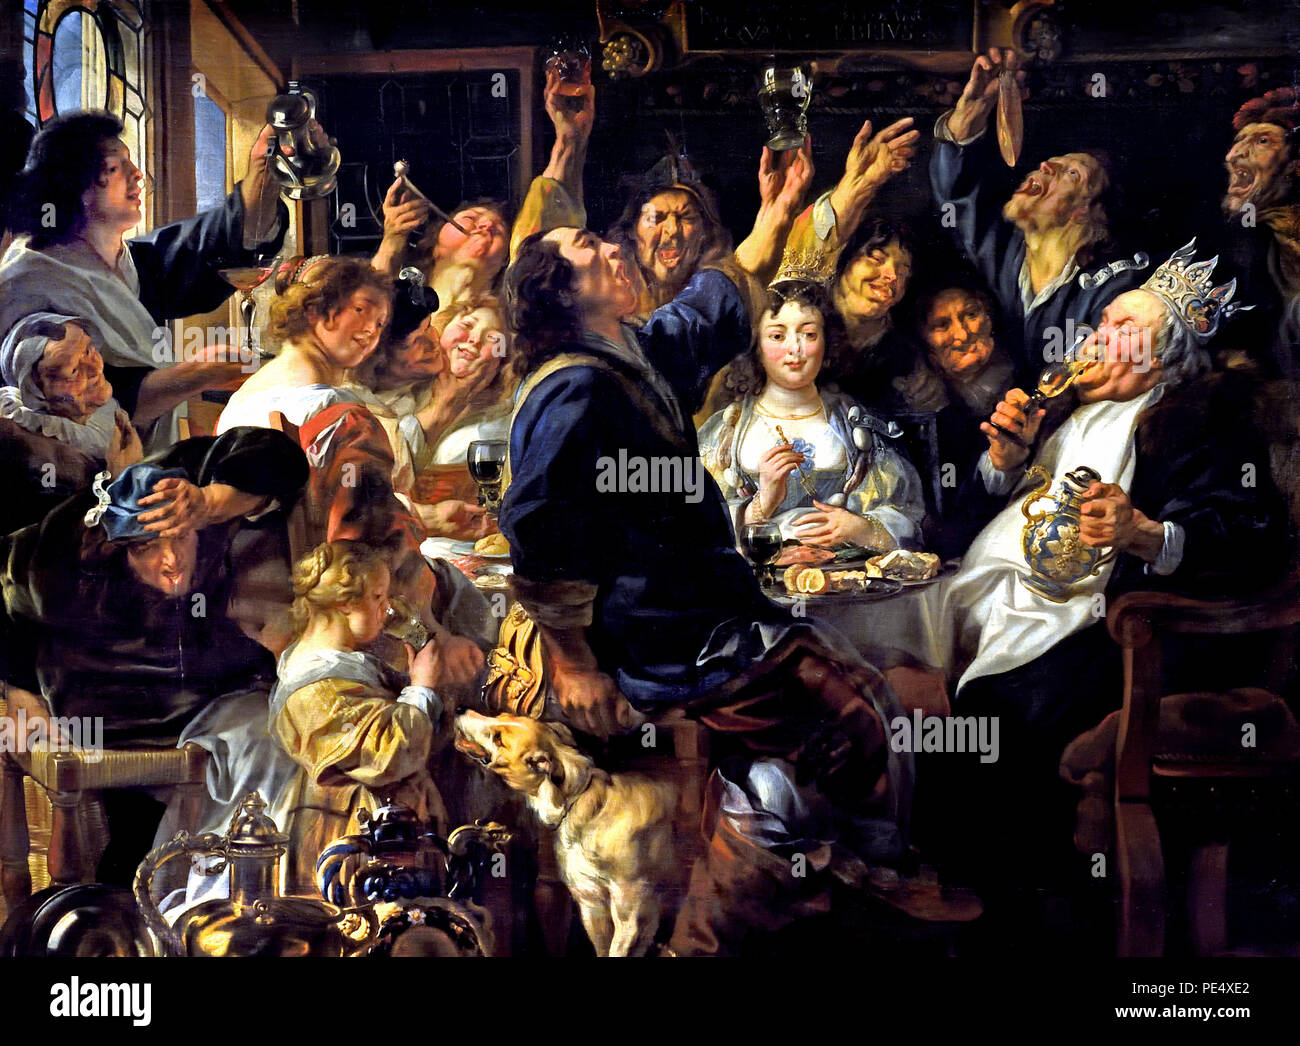 Feast of the bean king 1640/1645 by Jacob Jordaens ( 1593 – 1678) Flemish Baroque painter Belgian Belgium ( Flemish folk custom on Epiphany: The finder of the bean baked in a cake becomes king of the feast, he chooses the most beautiful woman as the queen.) - Stock Image